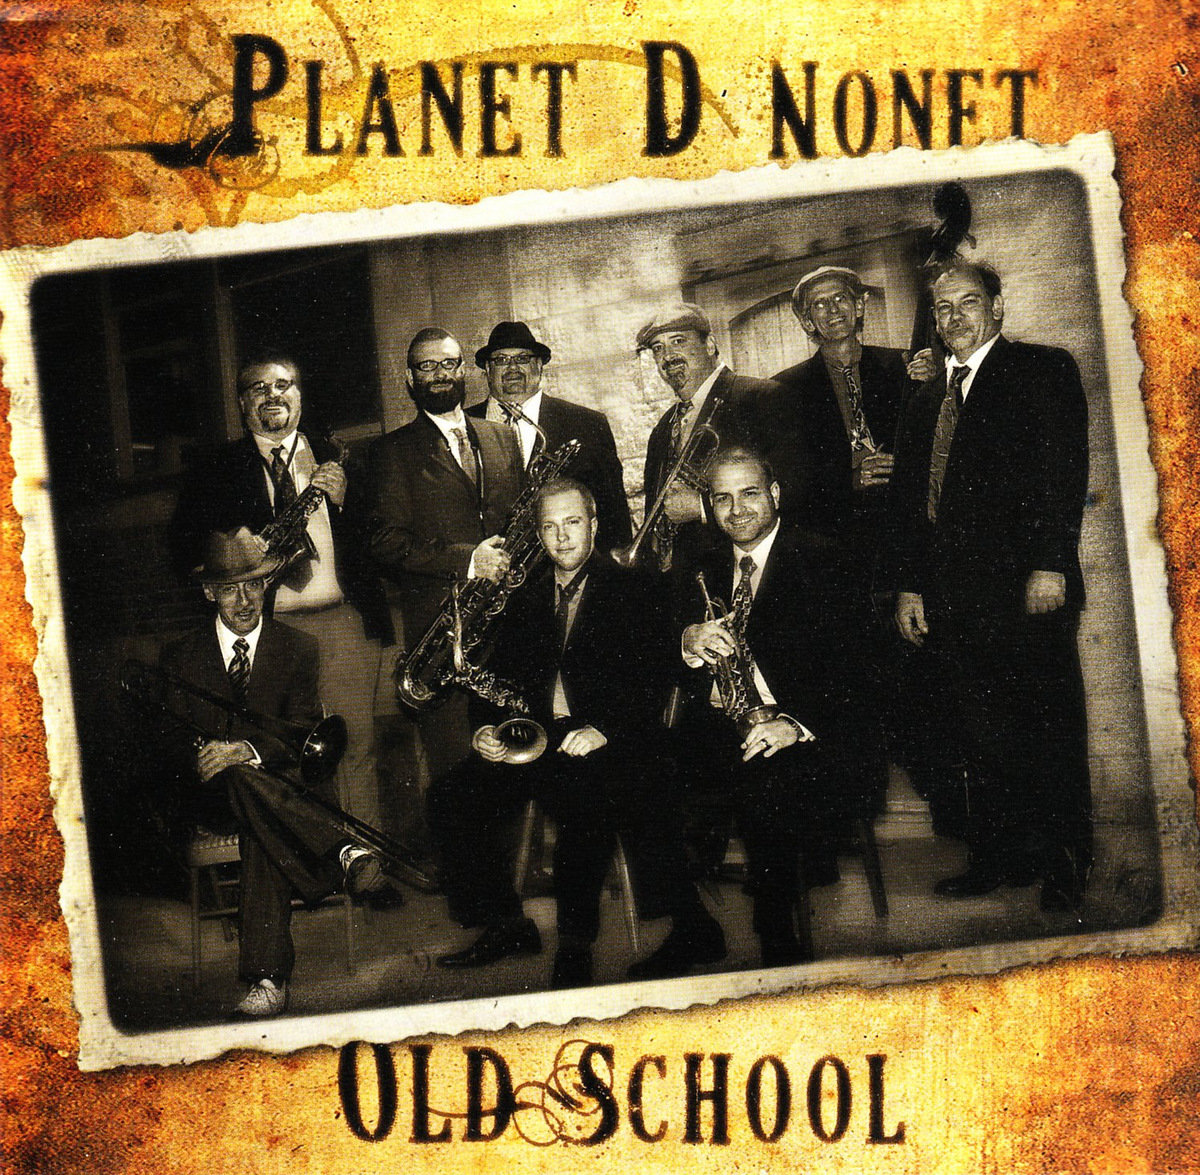 Old School, The Planet D Nonet